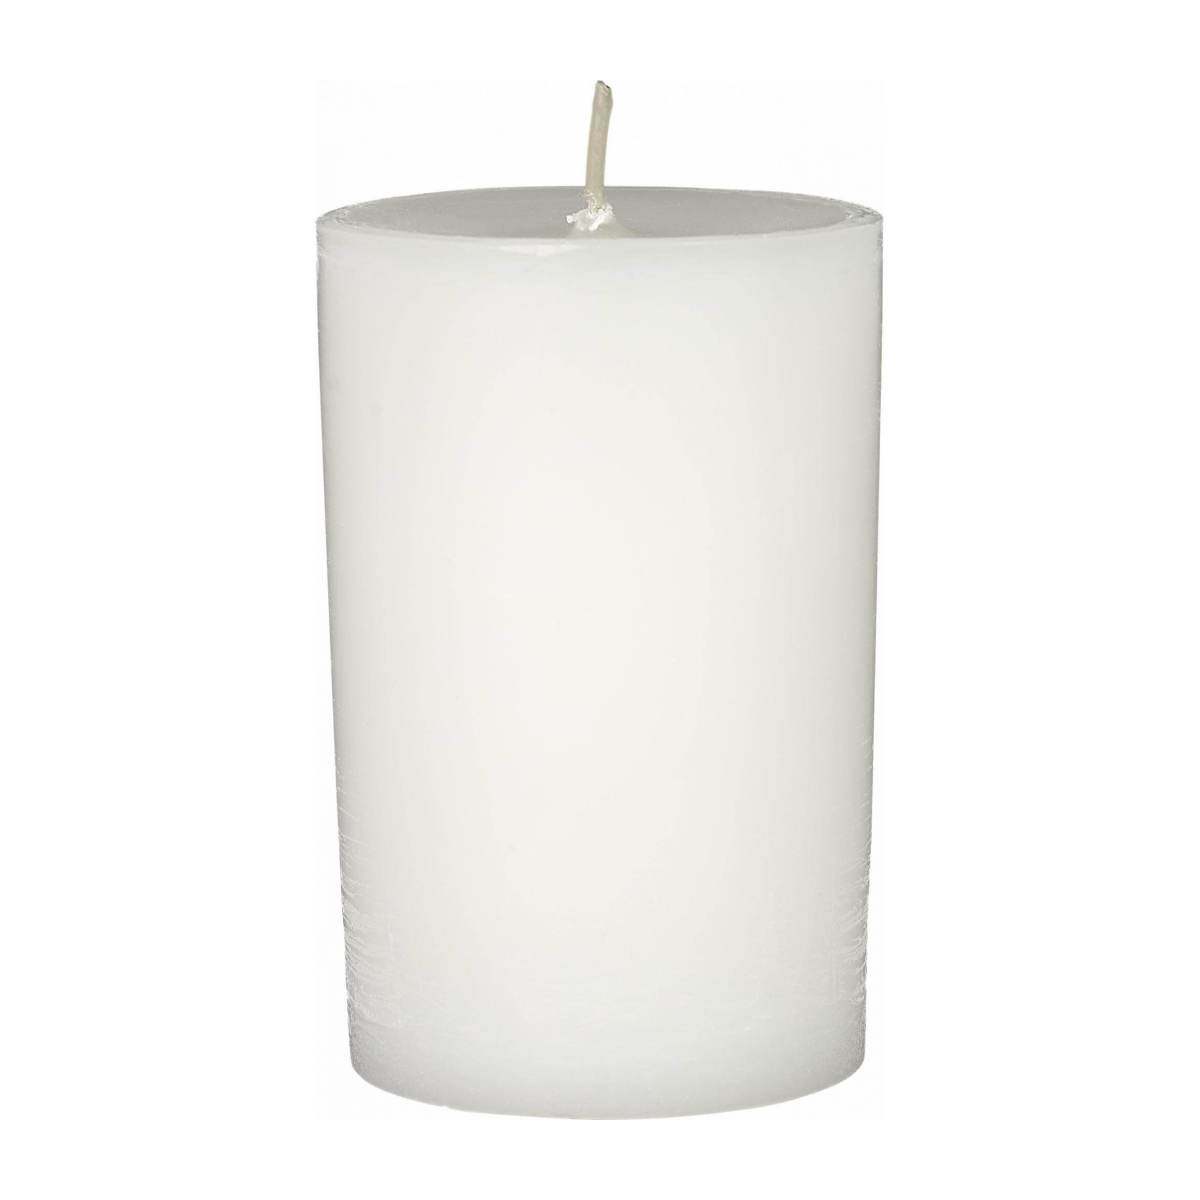 Refill for 3 small Palais scented candles, 3 x 150g n°2